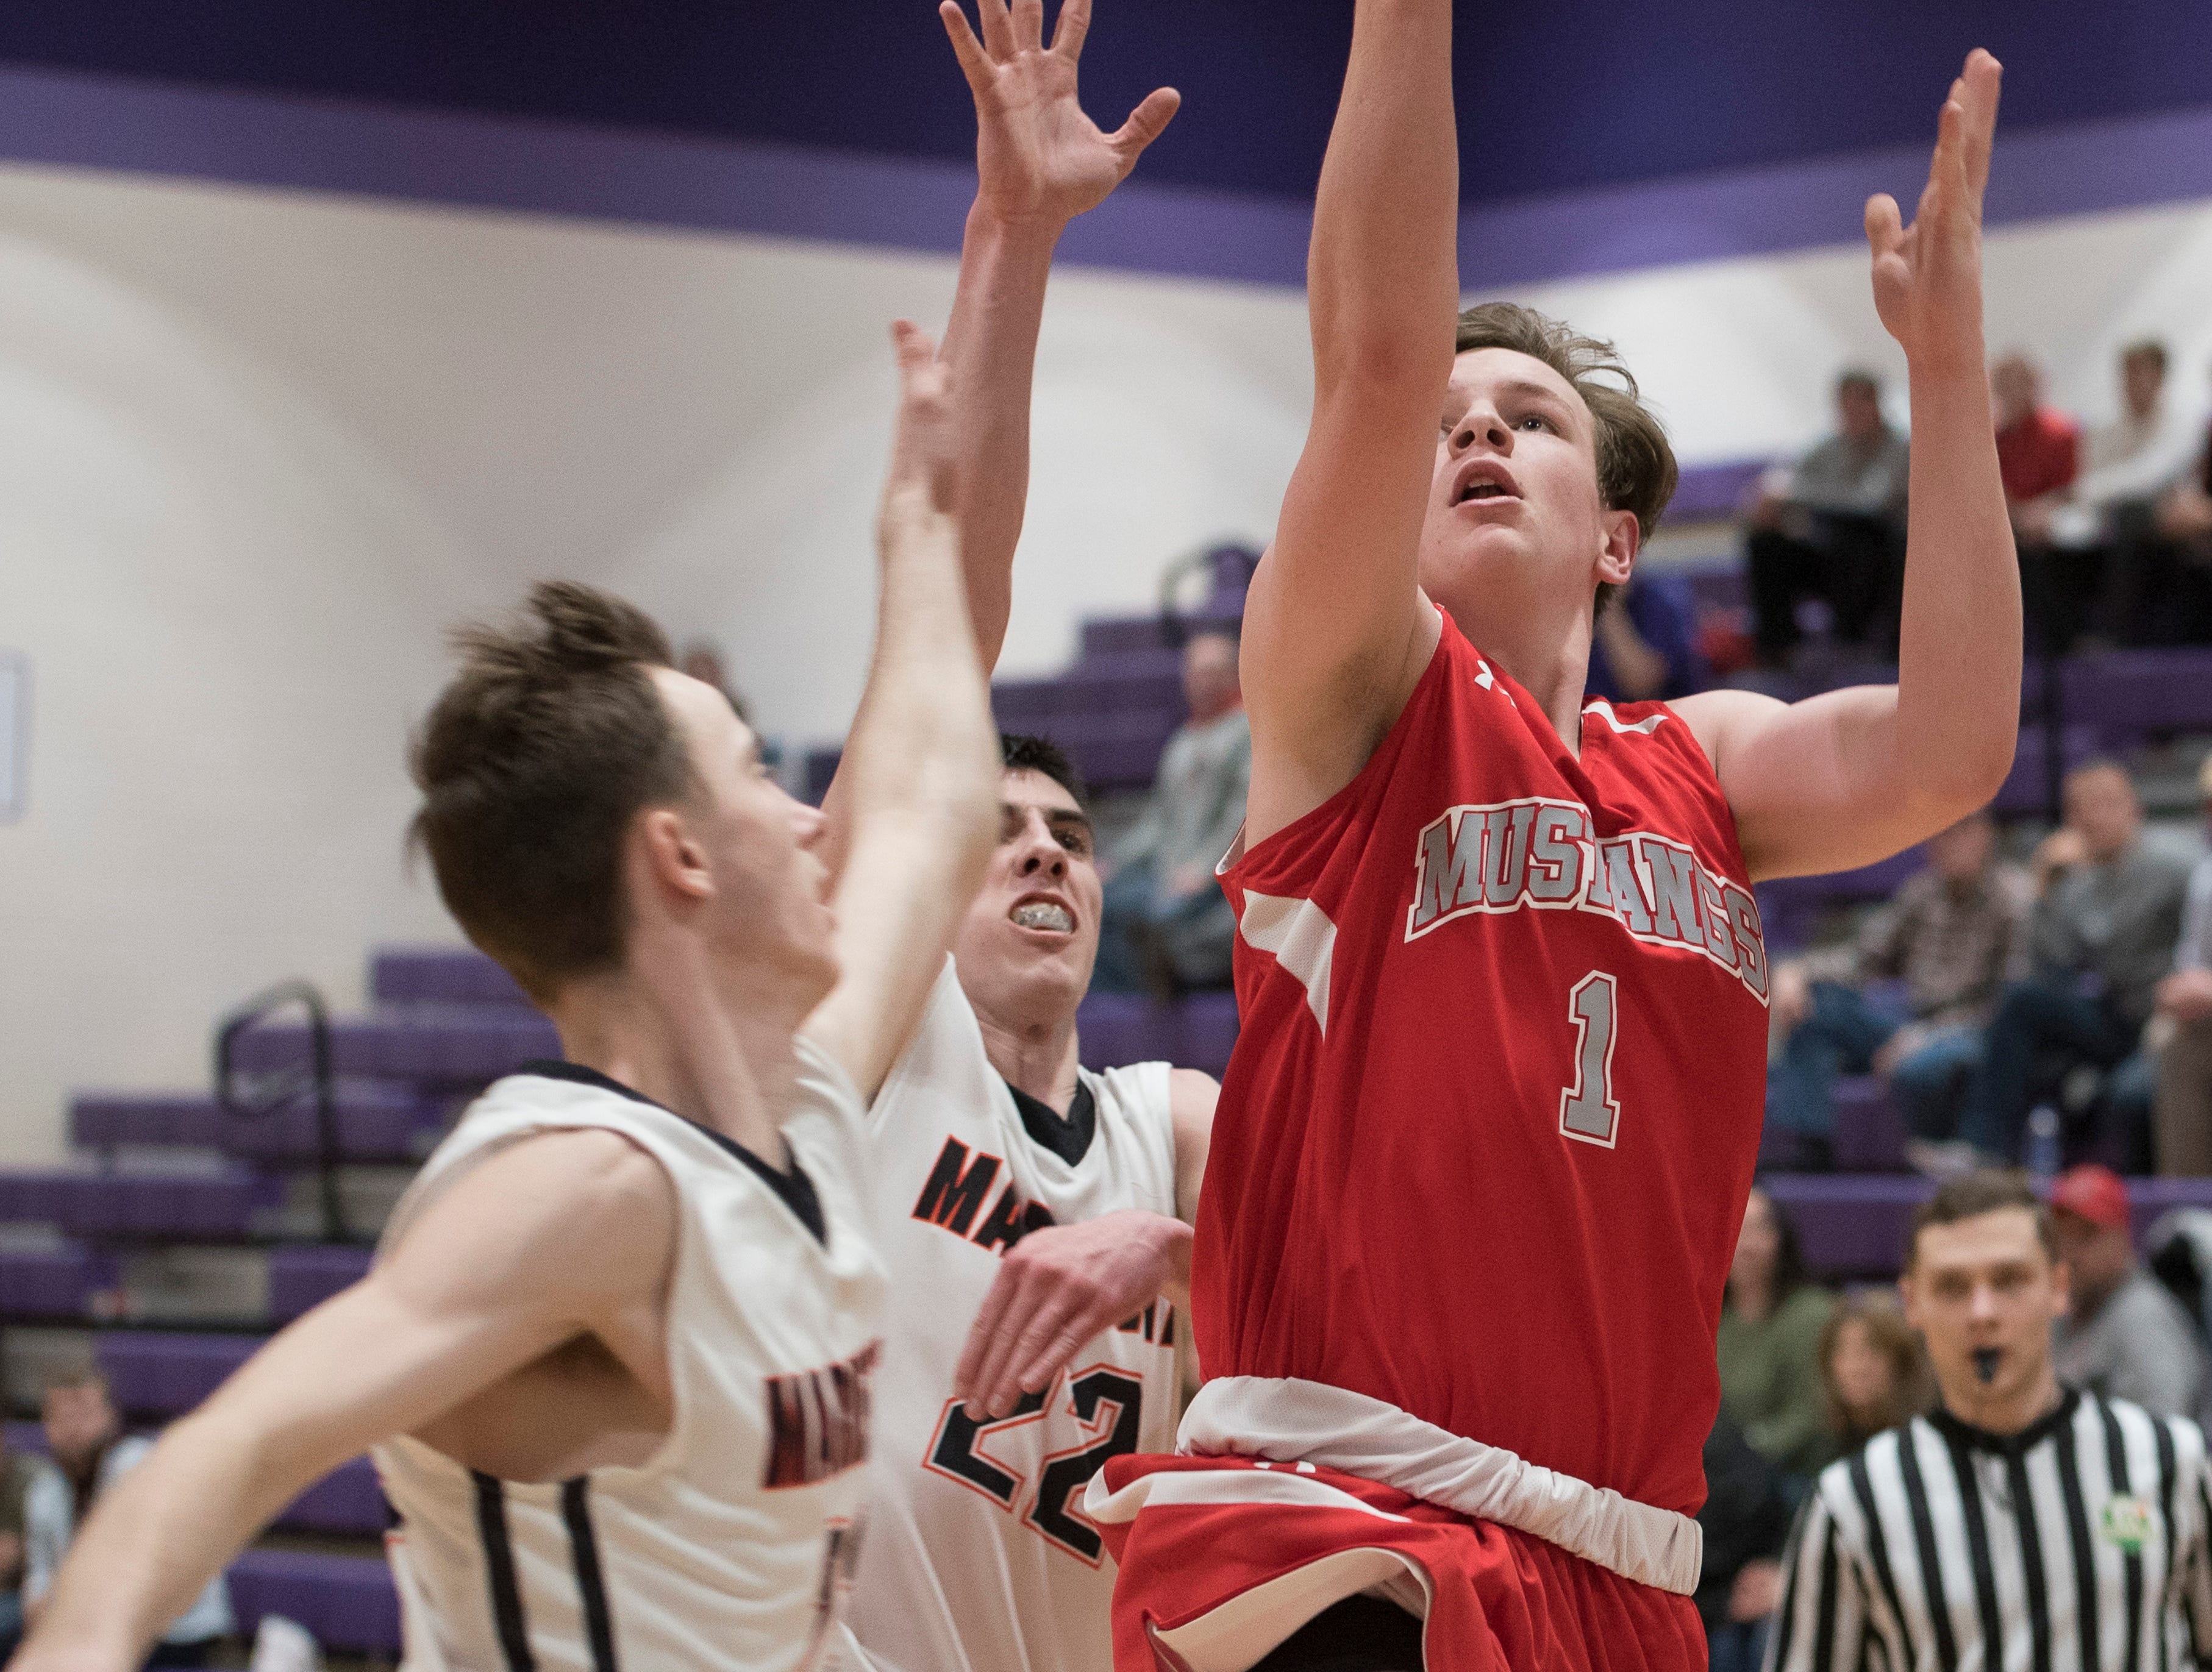 Westfall junior Jay Wyman scores against Marietta Tuesday night during a Division II sectional semifinal's game Tuesday night at Logan High School.